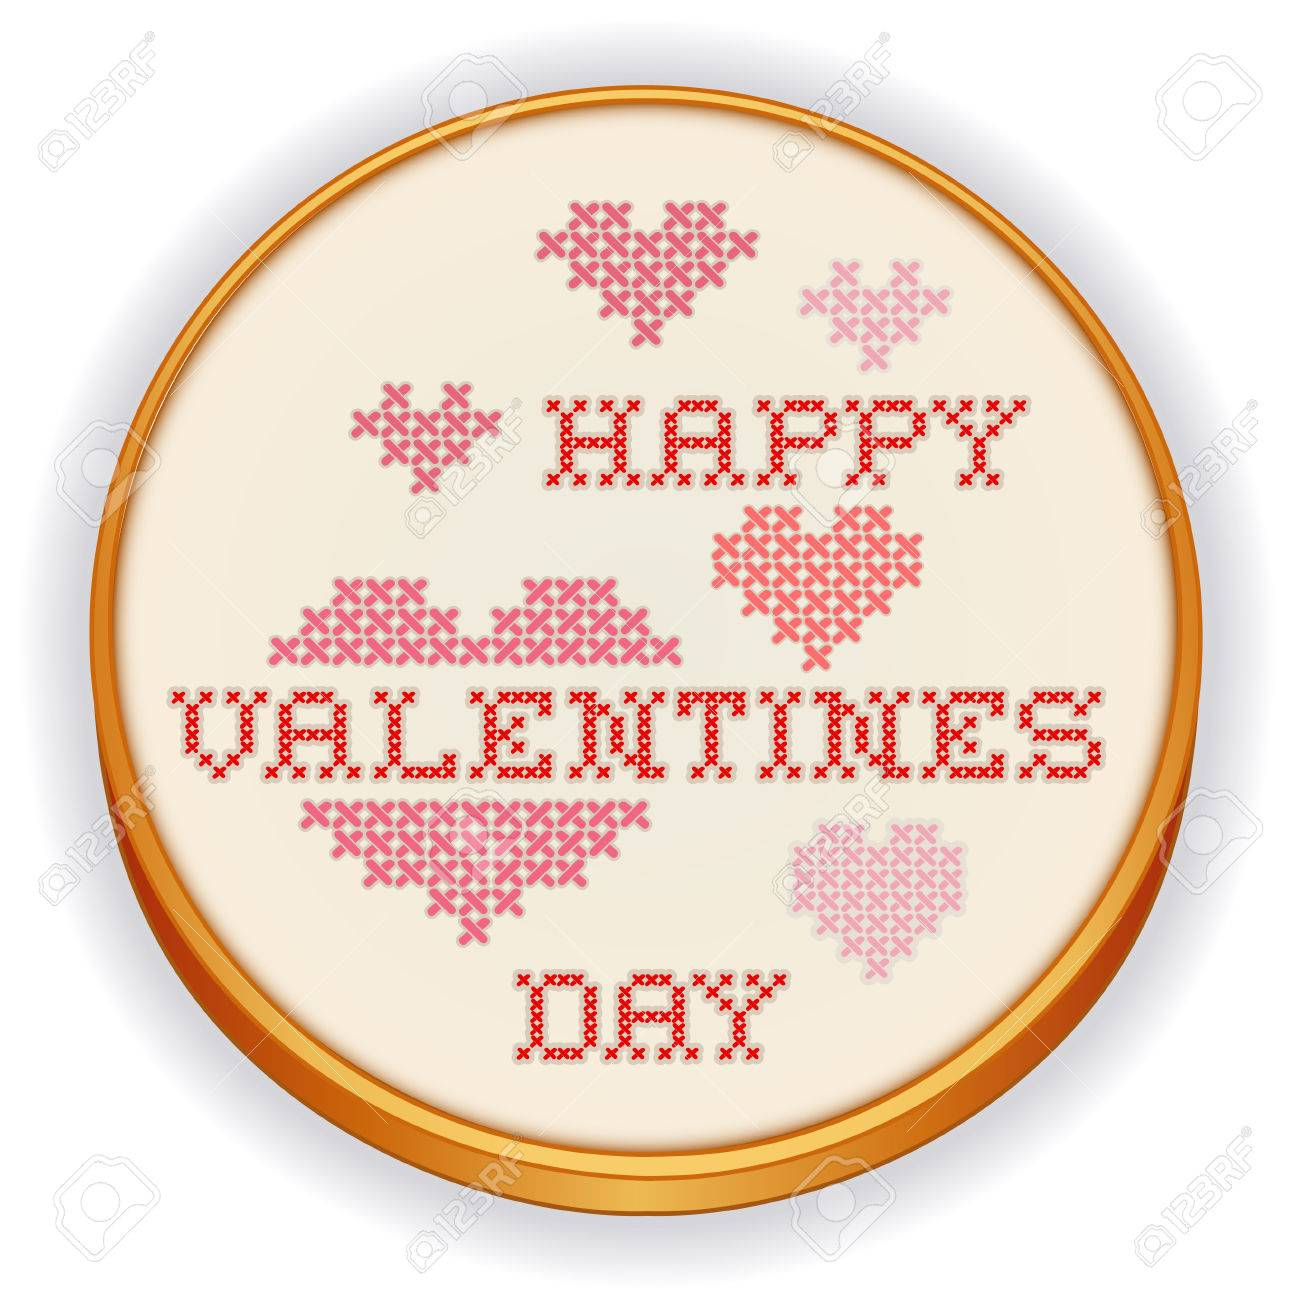 Happy Valentines Day Cross Stitch Embroidery On Retro Wood Hoop